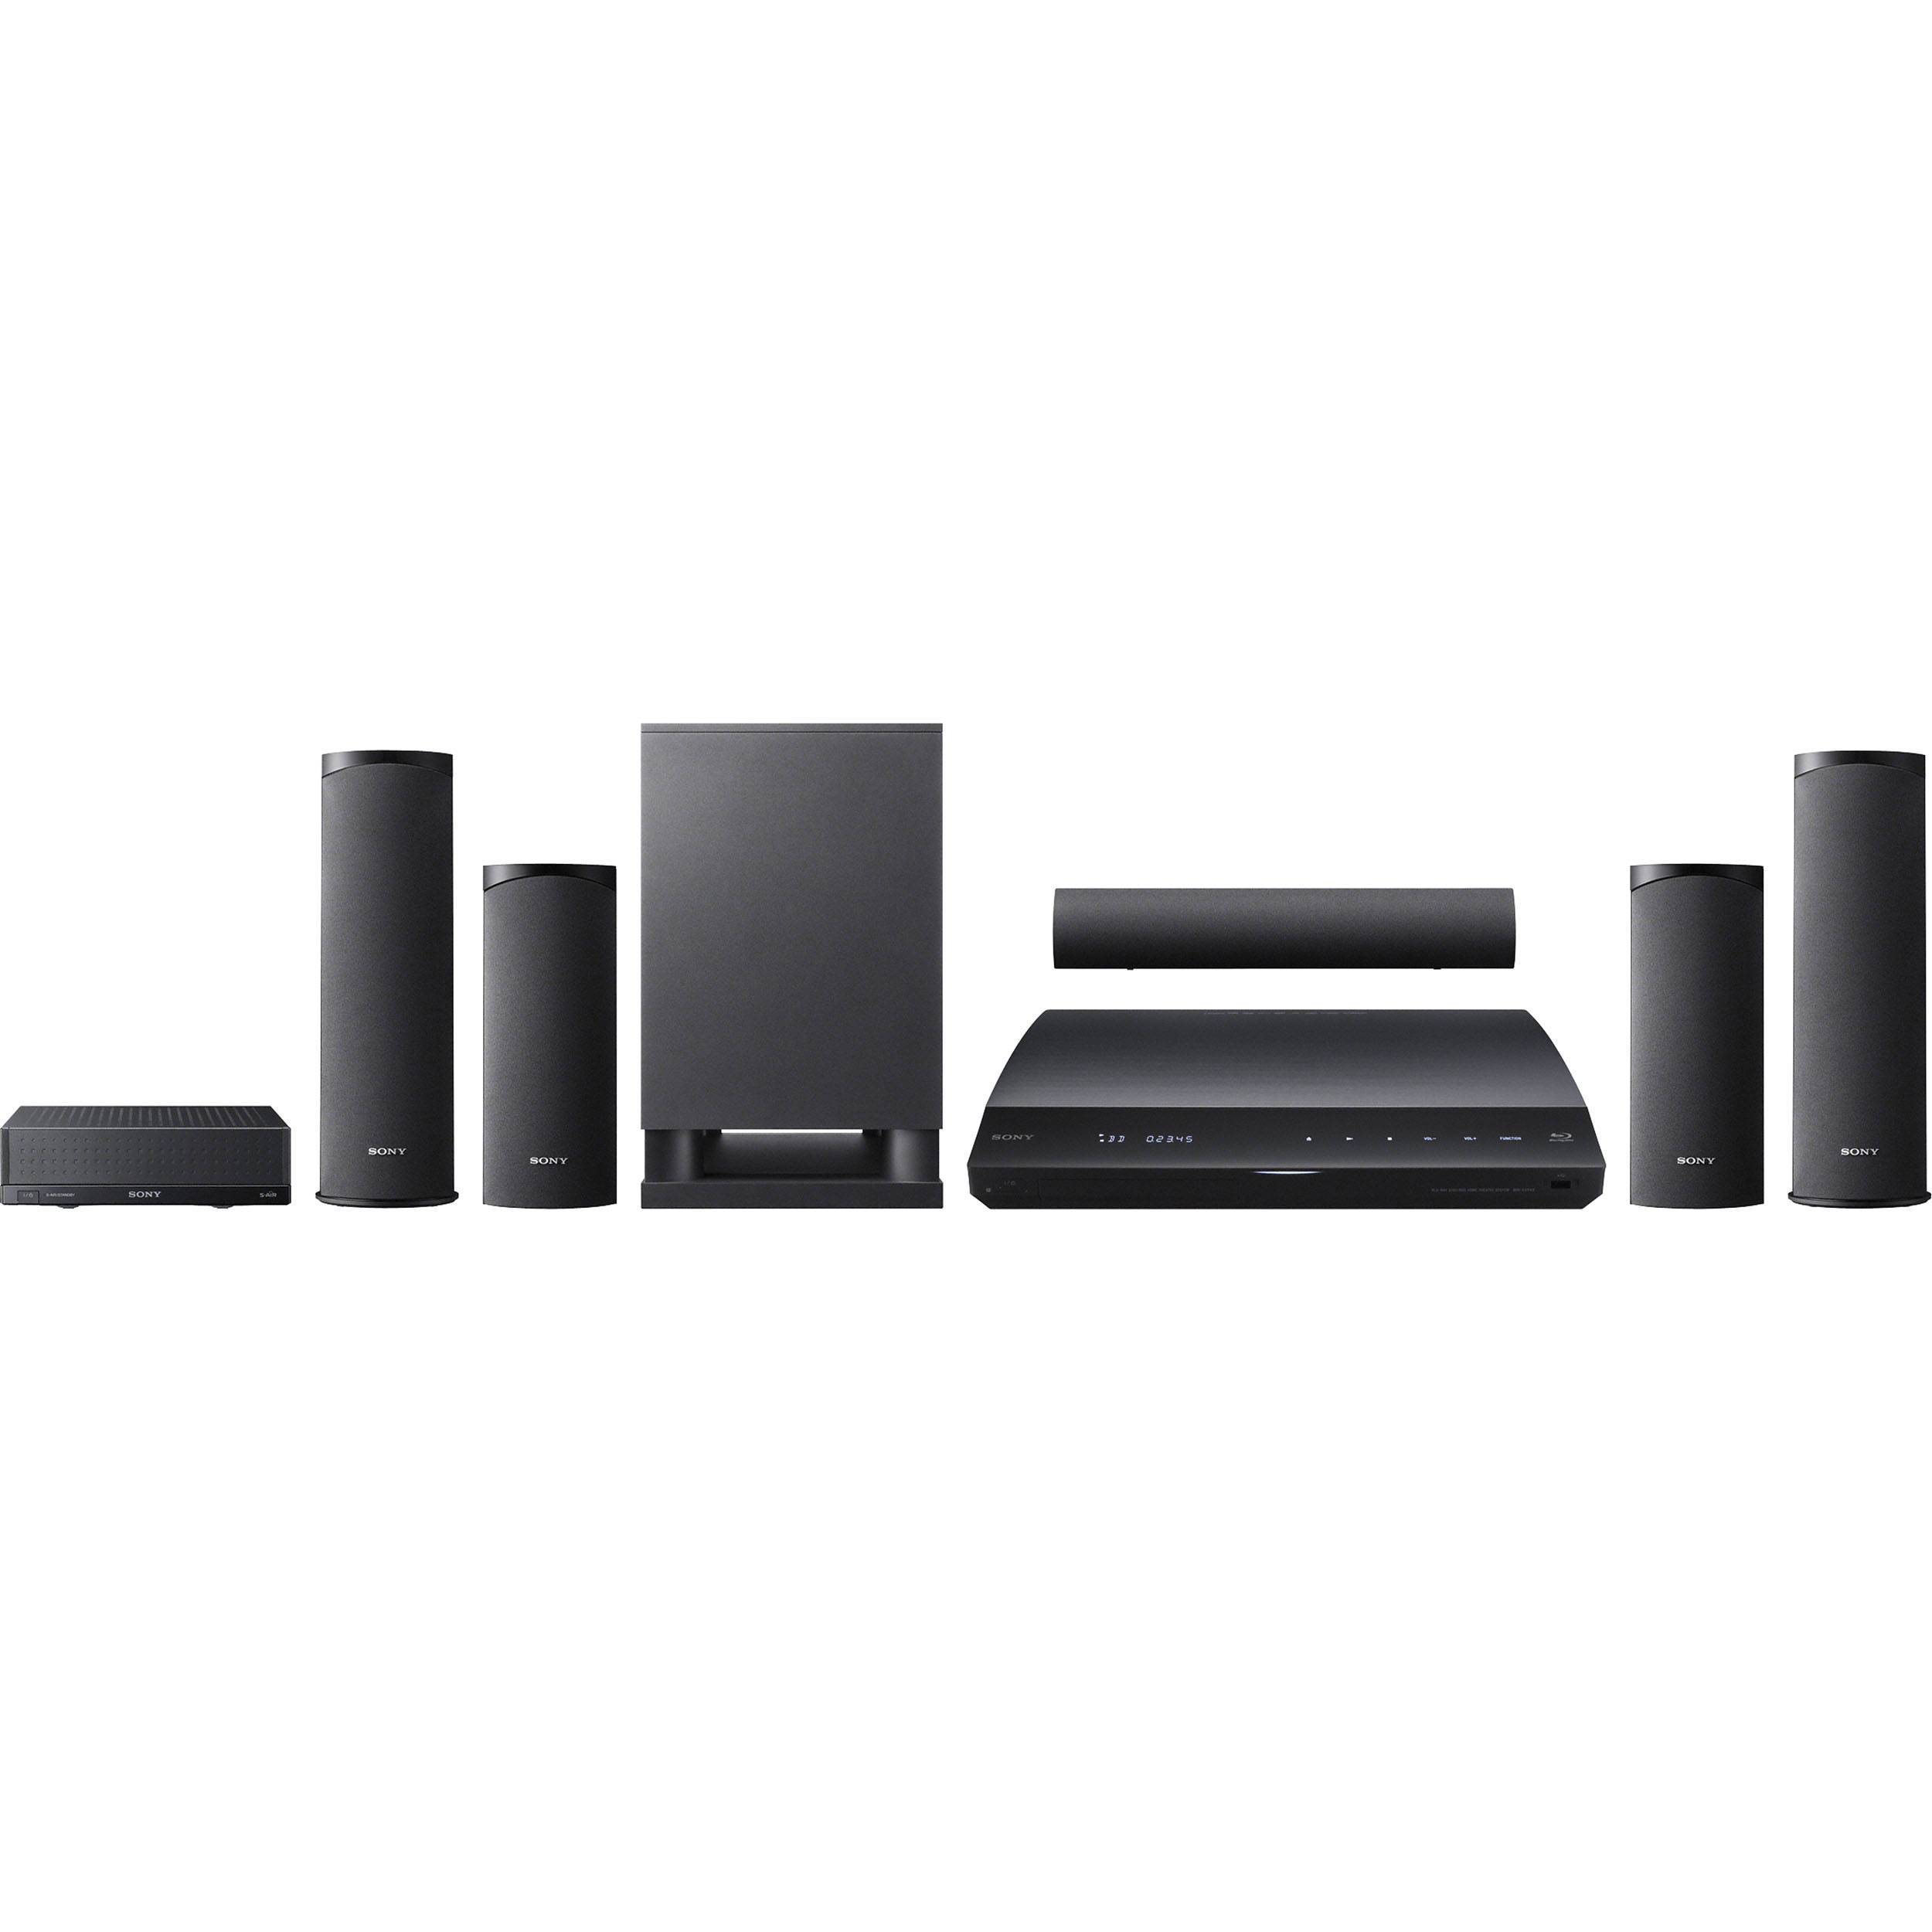 sony bdve780w 3d blu ray home theater system bdve780w b h. Black Bedroom Furniture Sets. Home Design Ideas